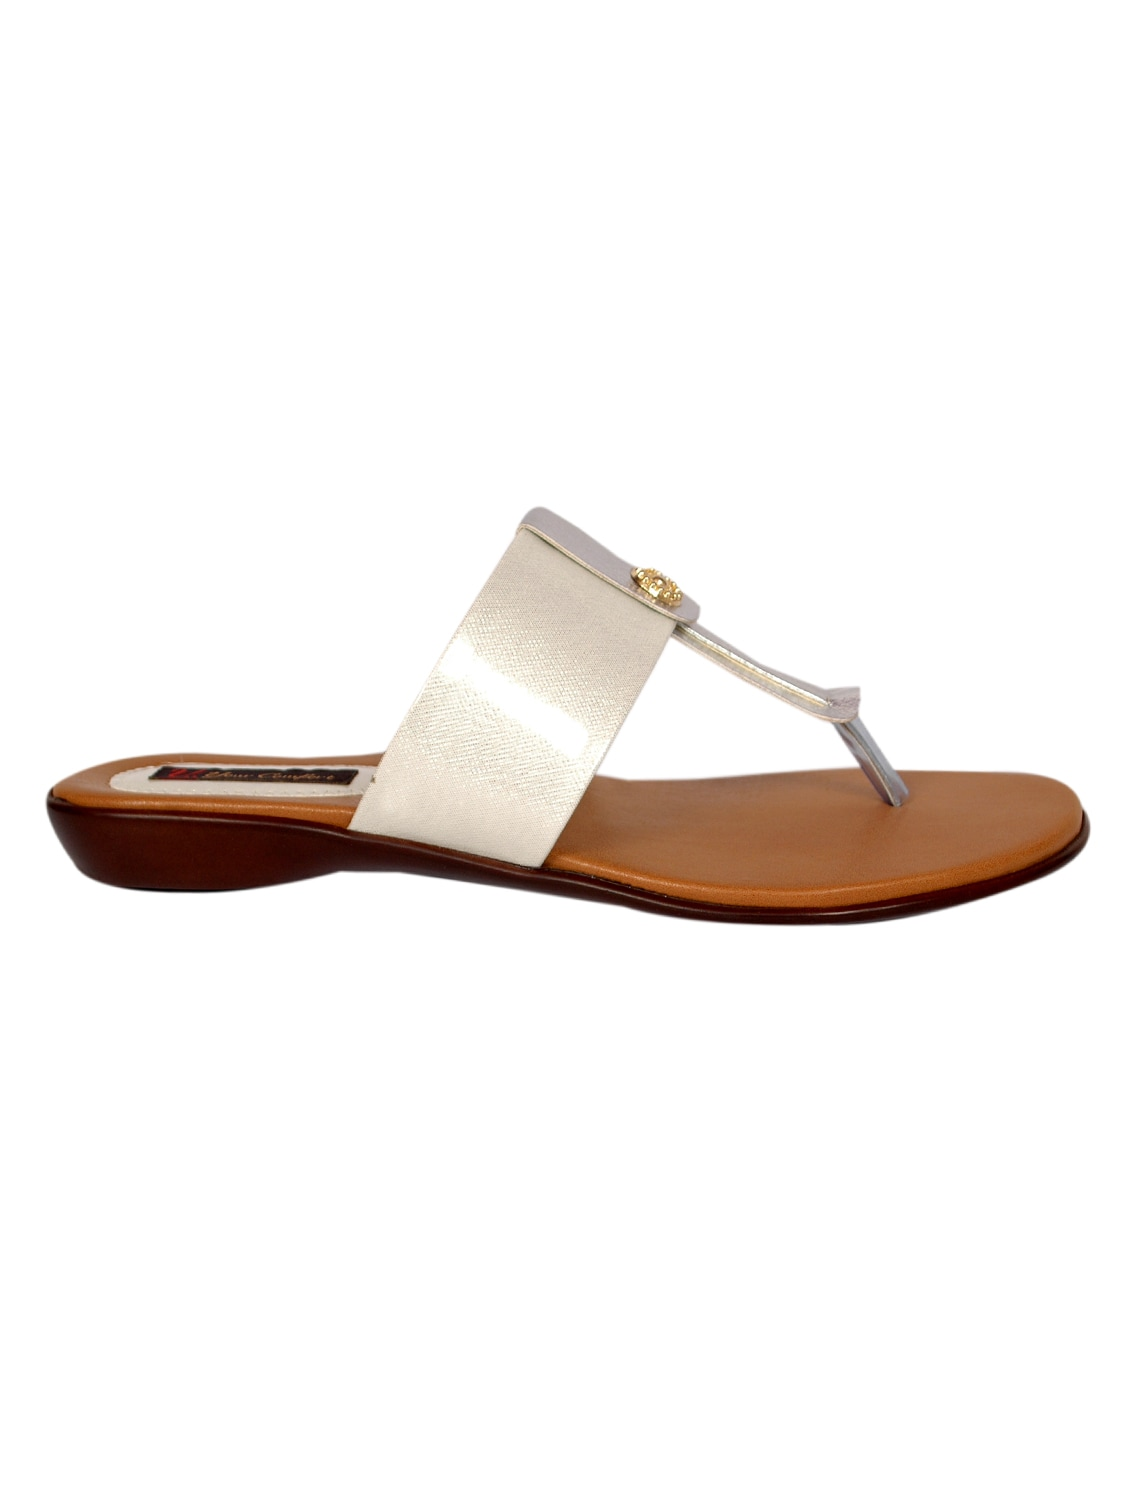 ce5ddae67a15 Buy White T-strap Sandal for Women from Studio 09 for ₹1599 at 0% off